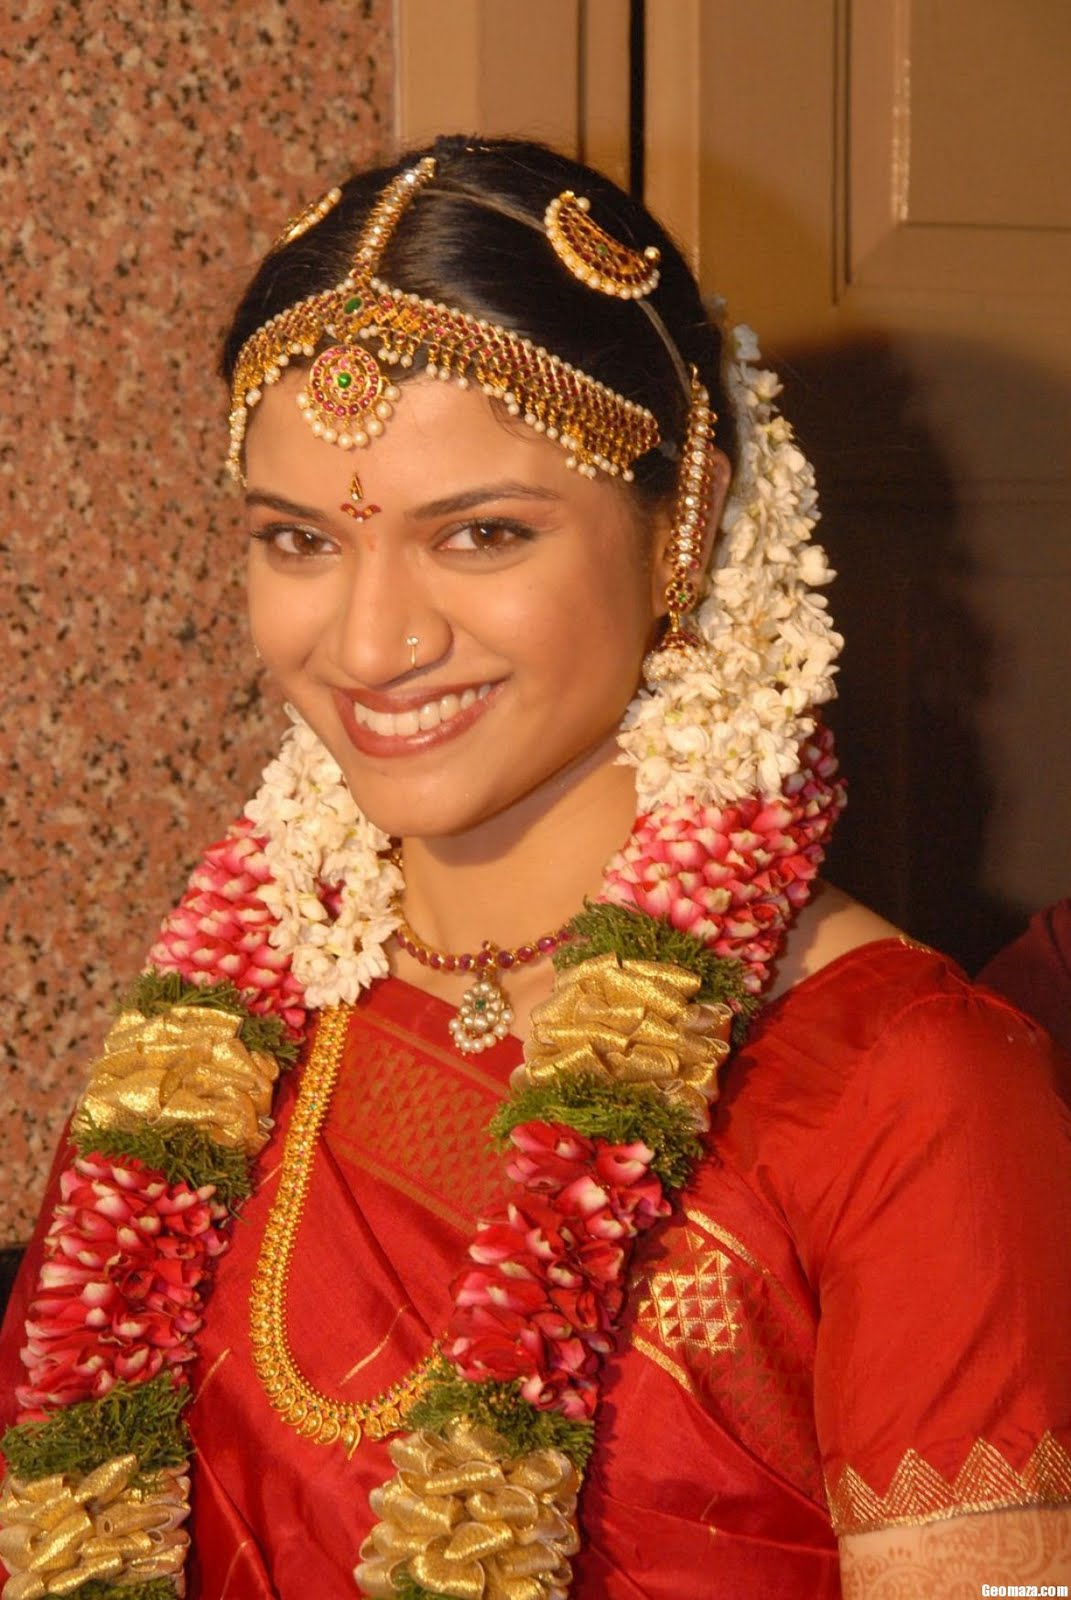 South Indian Actress Wallpapers In Hd Samantha Ruth: Indiangoldesigns.com: South Indian Bridal Jewellery